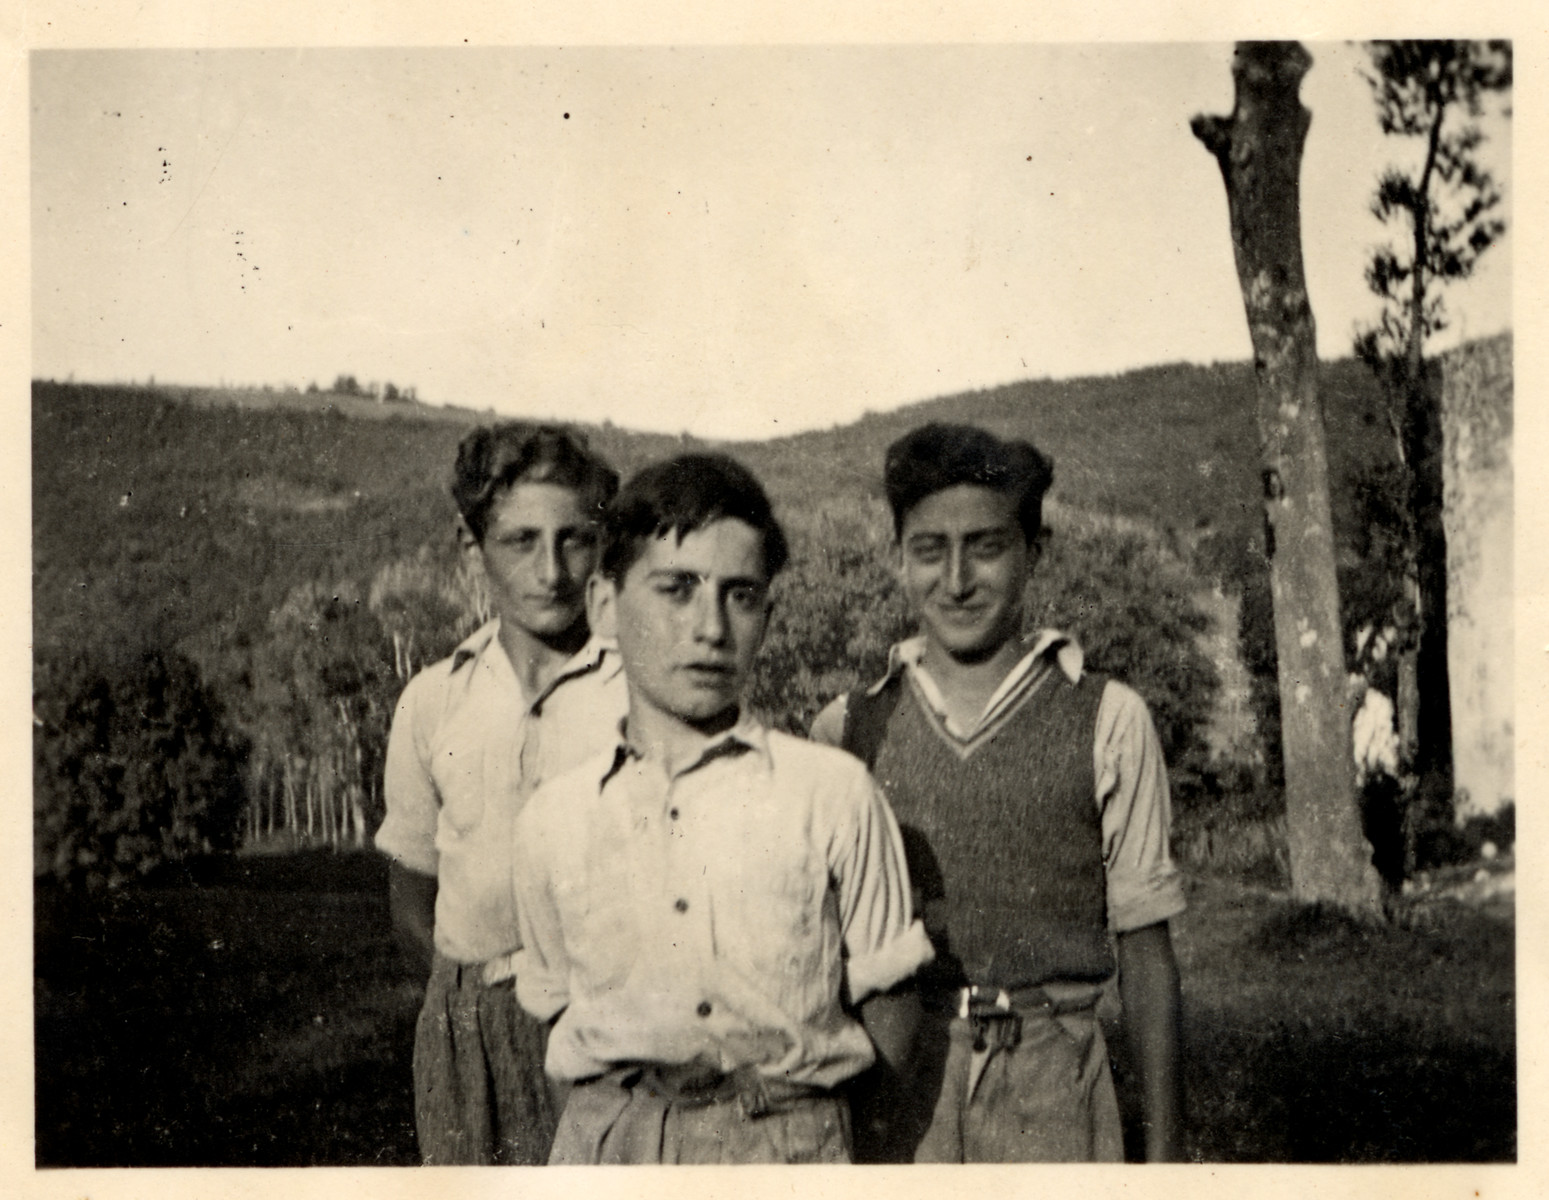 Three young men pose for a photograph at the children's home of Chateau de la Hille, two years prior to joining the resistence  Pictured left: Rudi Oehlbaum, Egon Berlin and Joseph Dortort. All three joined the French Maquis resistance fighters in 1944 at age 16 and fought in a battle at Roquefixade in July 1944. Egon and 16 young French fighters were killed in this battle. Oehlbaum and Dortort survived the war.